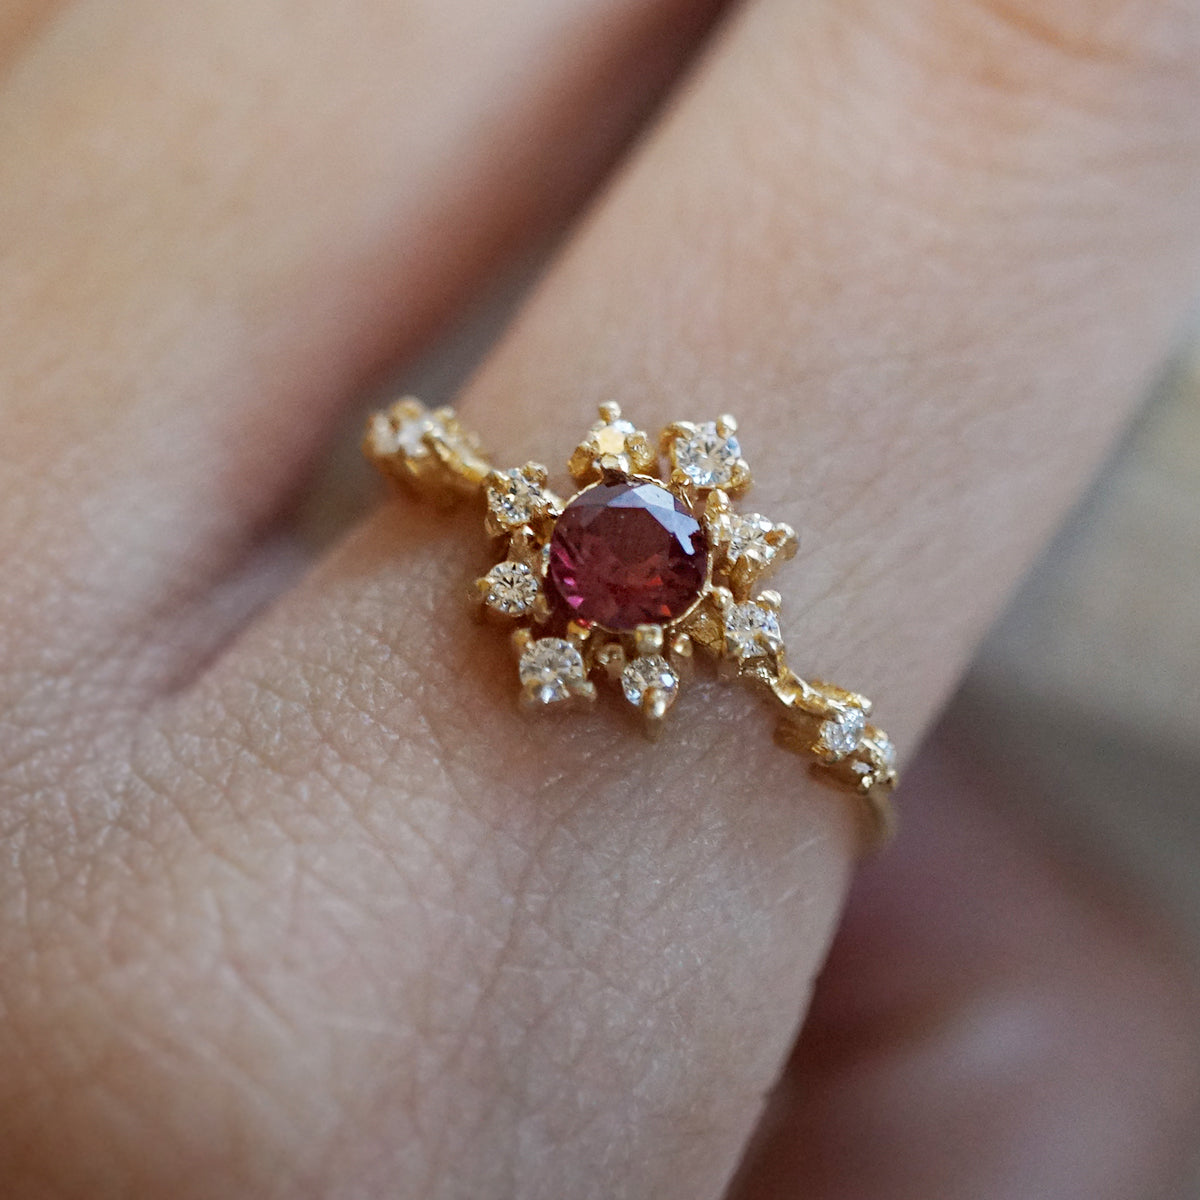 Garnet Rose Thorn Ring - Tippy Taste Jewelry